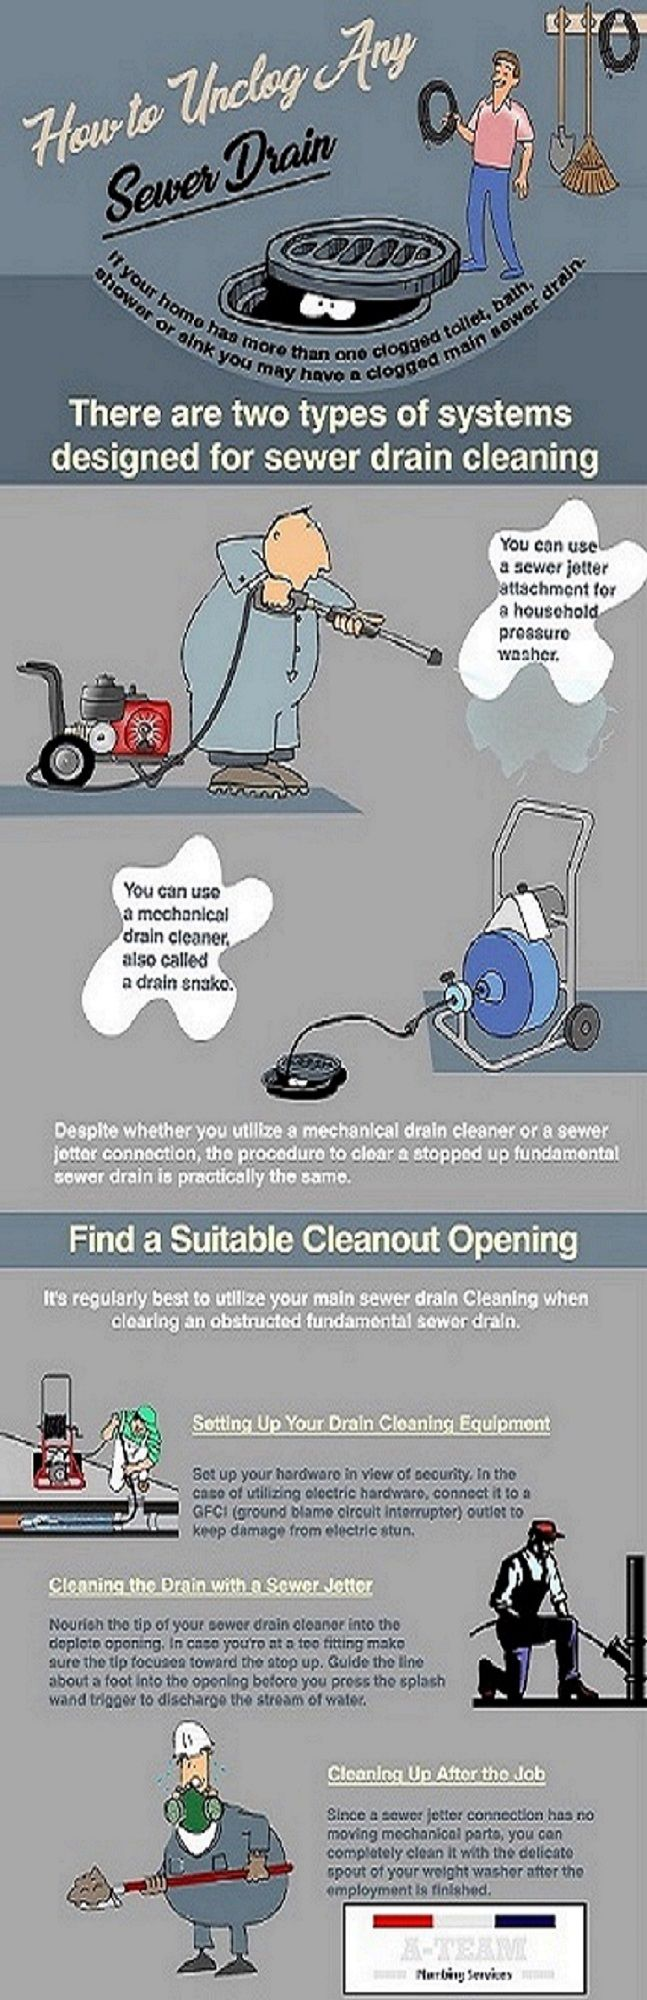 Best ways to unclog any sewer and drain infographic if - What can i use to unclog my bathroom sink ...